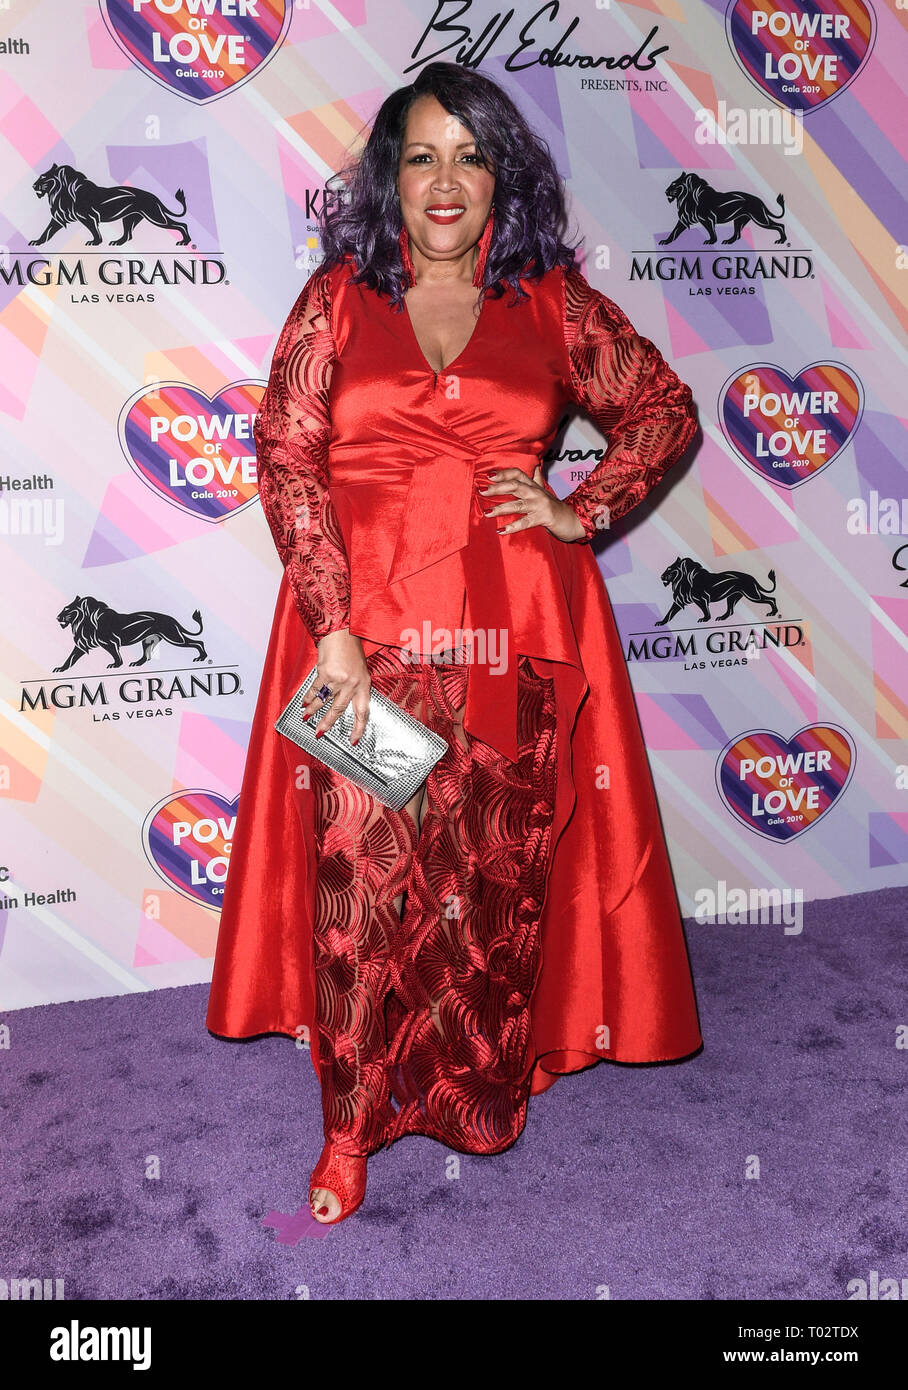 Las Vegas, NV, USA. 16th Mar, 2019. Angela Renee at Keep Memory Alive's 23rd Annual Power Of Love Gala at the MGM Grand Garden Arena in Las Vegas, Nevada on March 16, 2019. Credit: Damairs Carter/Media Punch/Alamy Live News - Stock Image